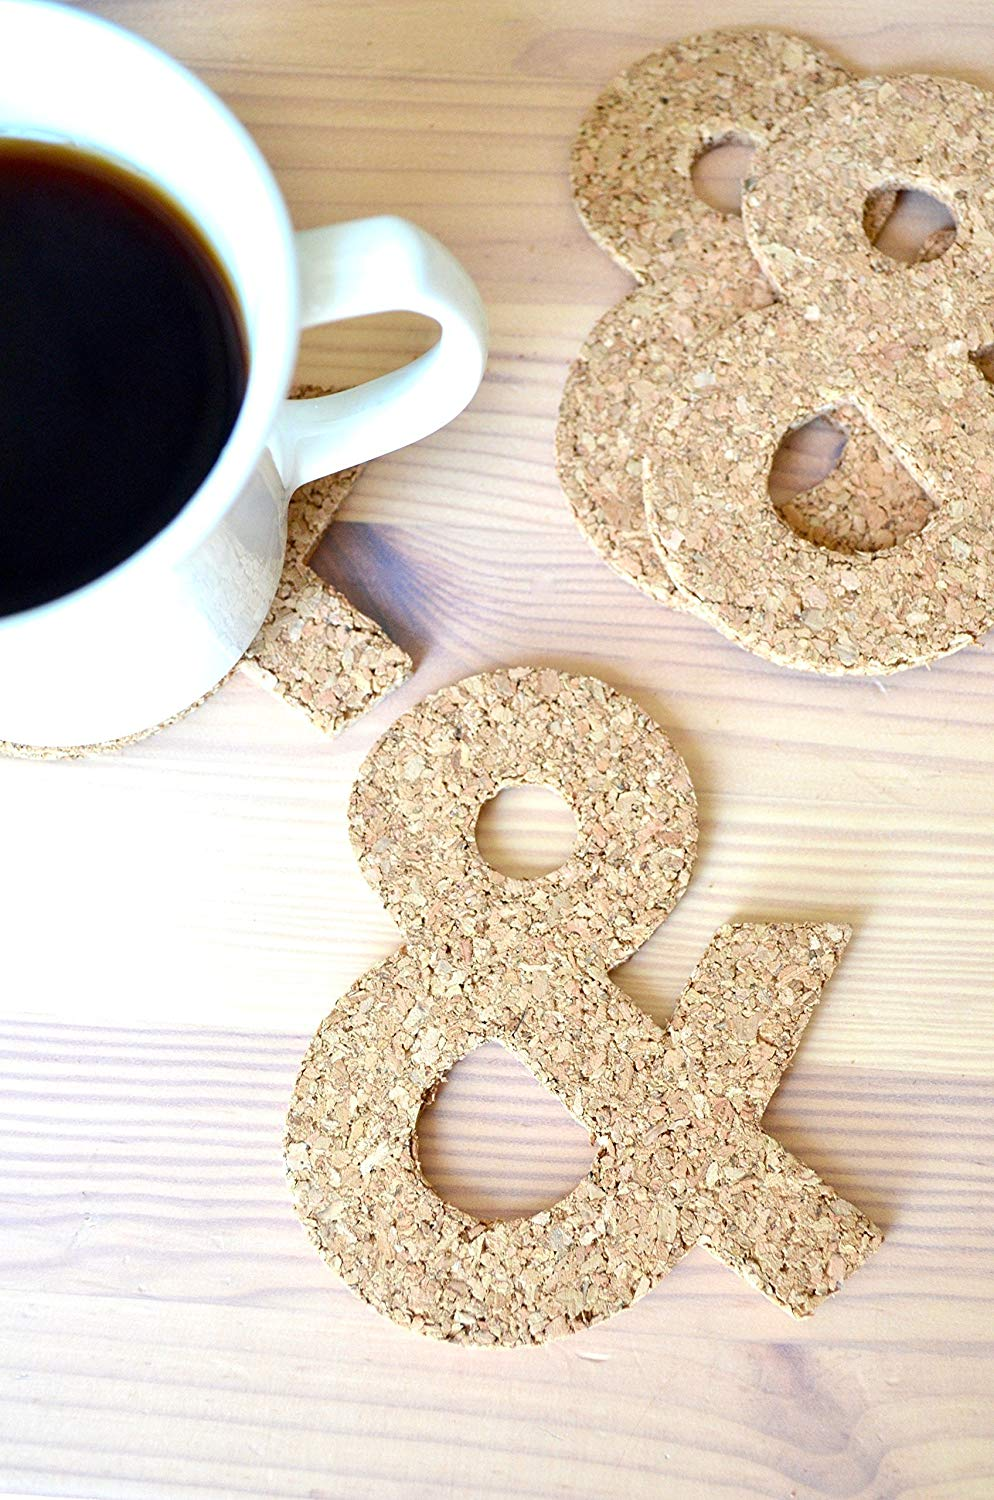 Cork ampersand coasters, Ten Amazing Hand-Made Gifts for $10 and Under www.theboondocksblog.com